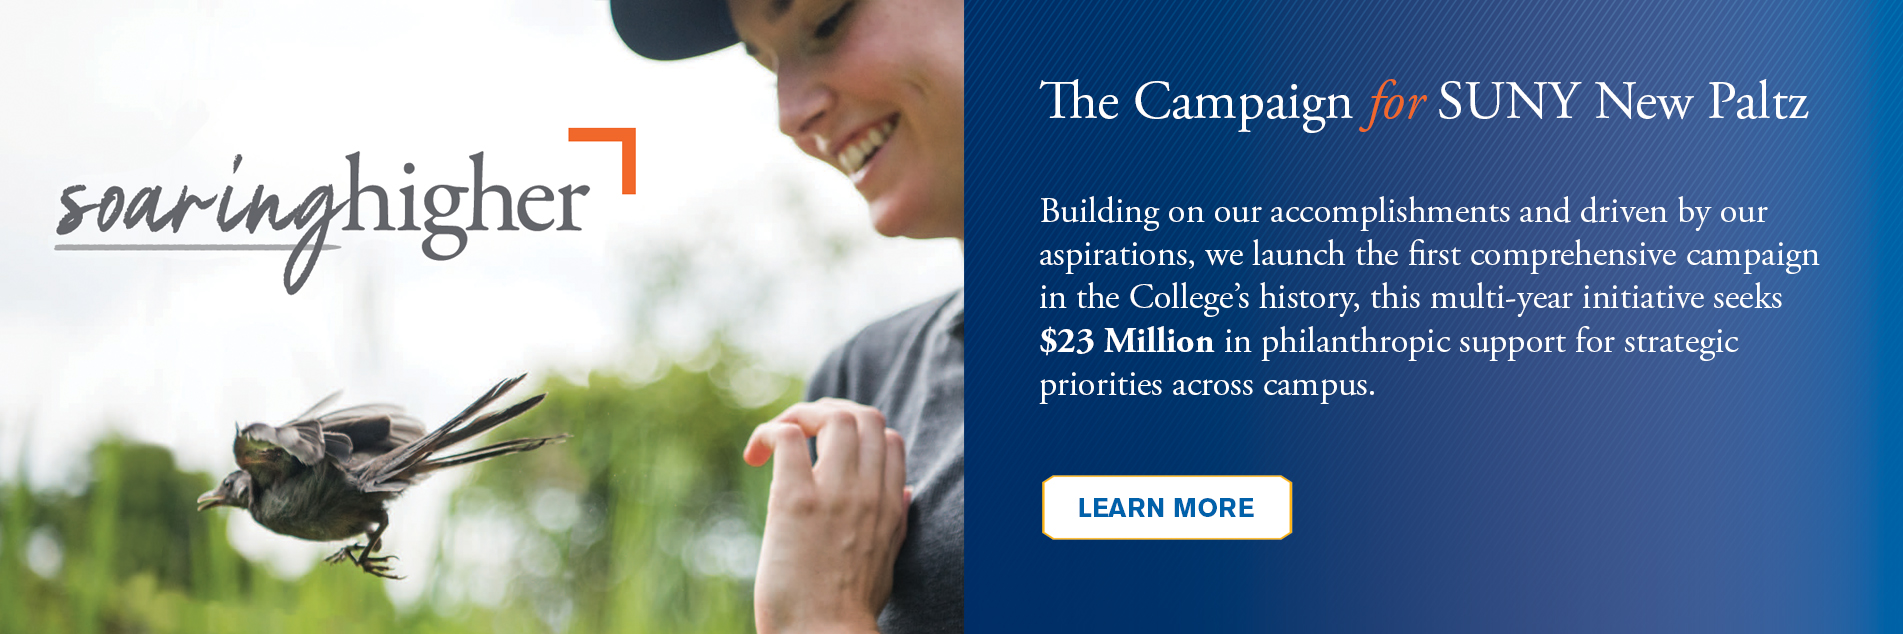 The Campaign for SUNY New Paltz